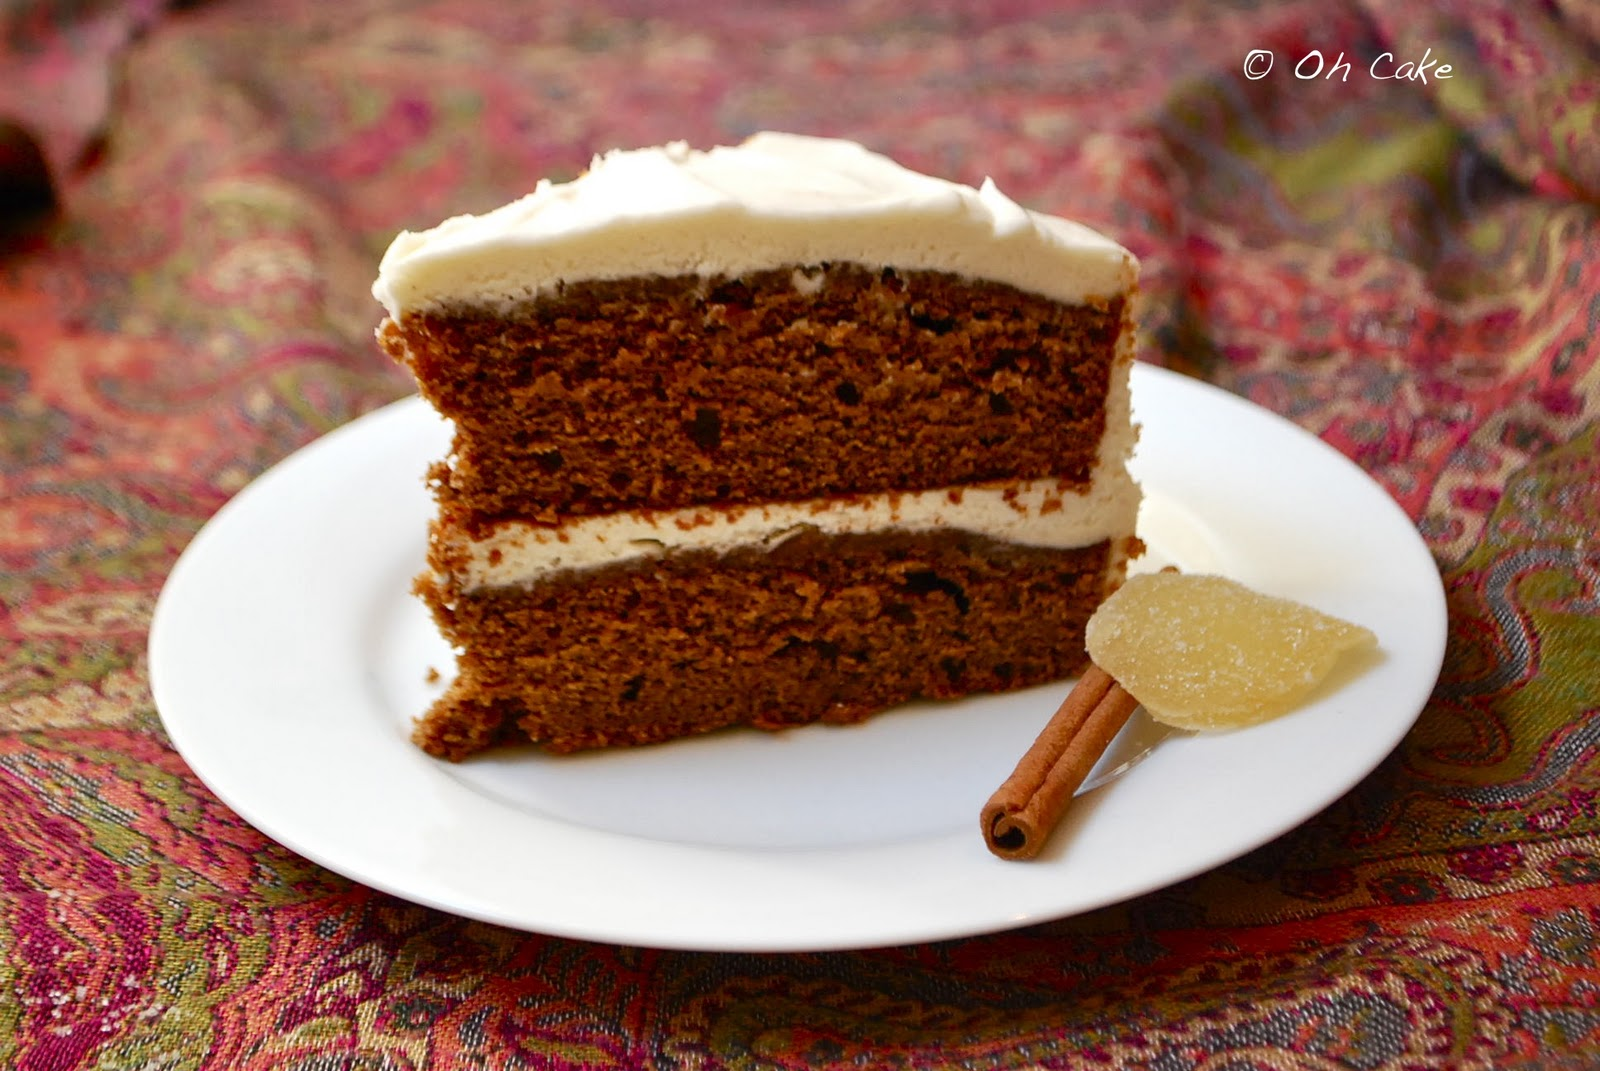 Gingerbread Cake with Cream Cheese Frosting ~ serves 8-12